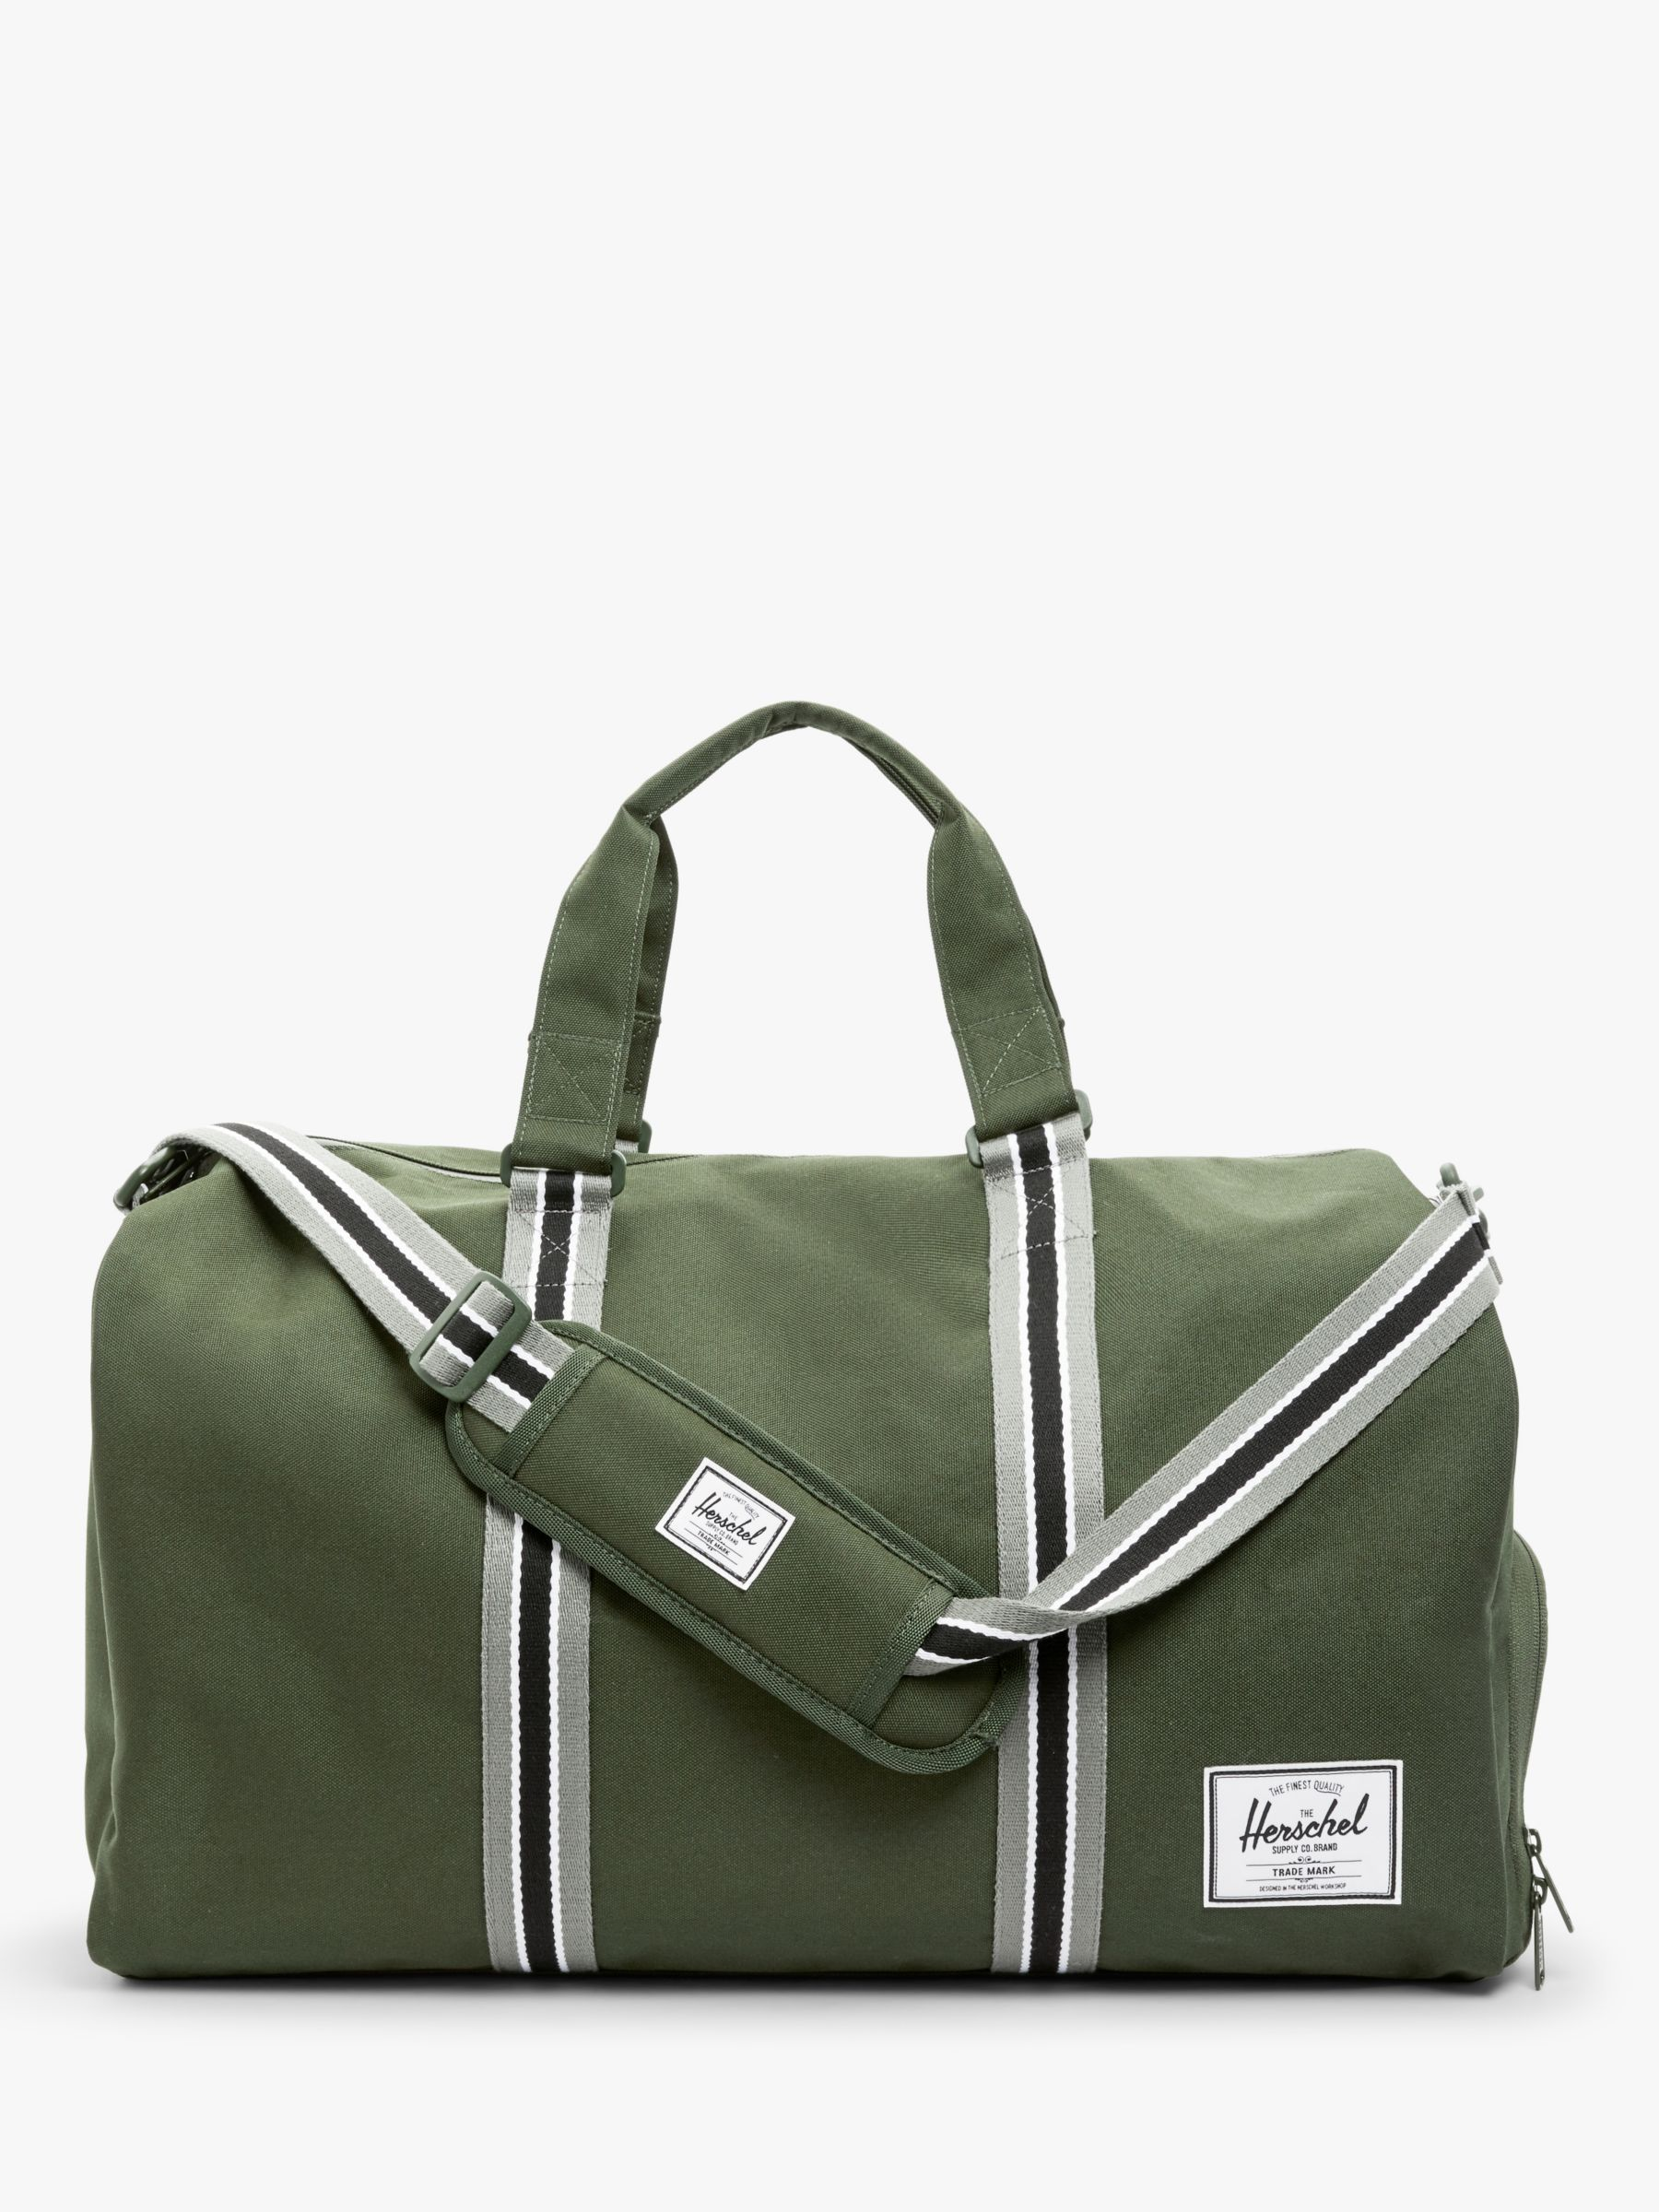 Herschel Supply Co. Herschel Supply Co. Novel Duffel Bag, Forest Green